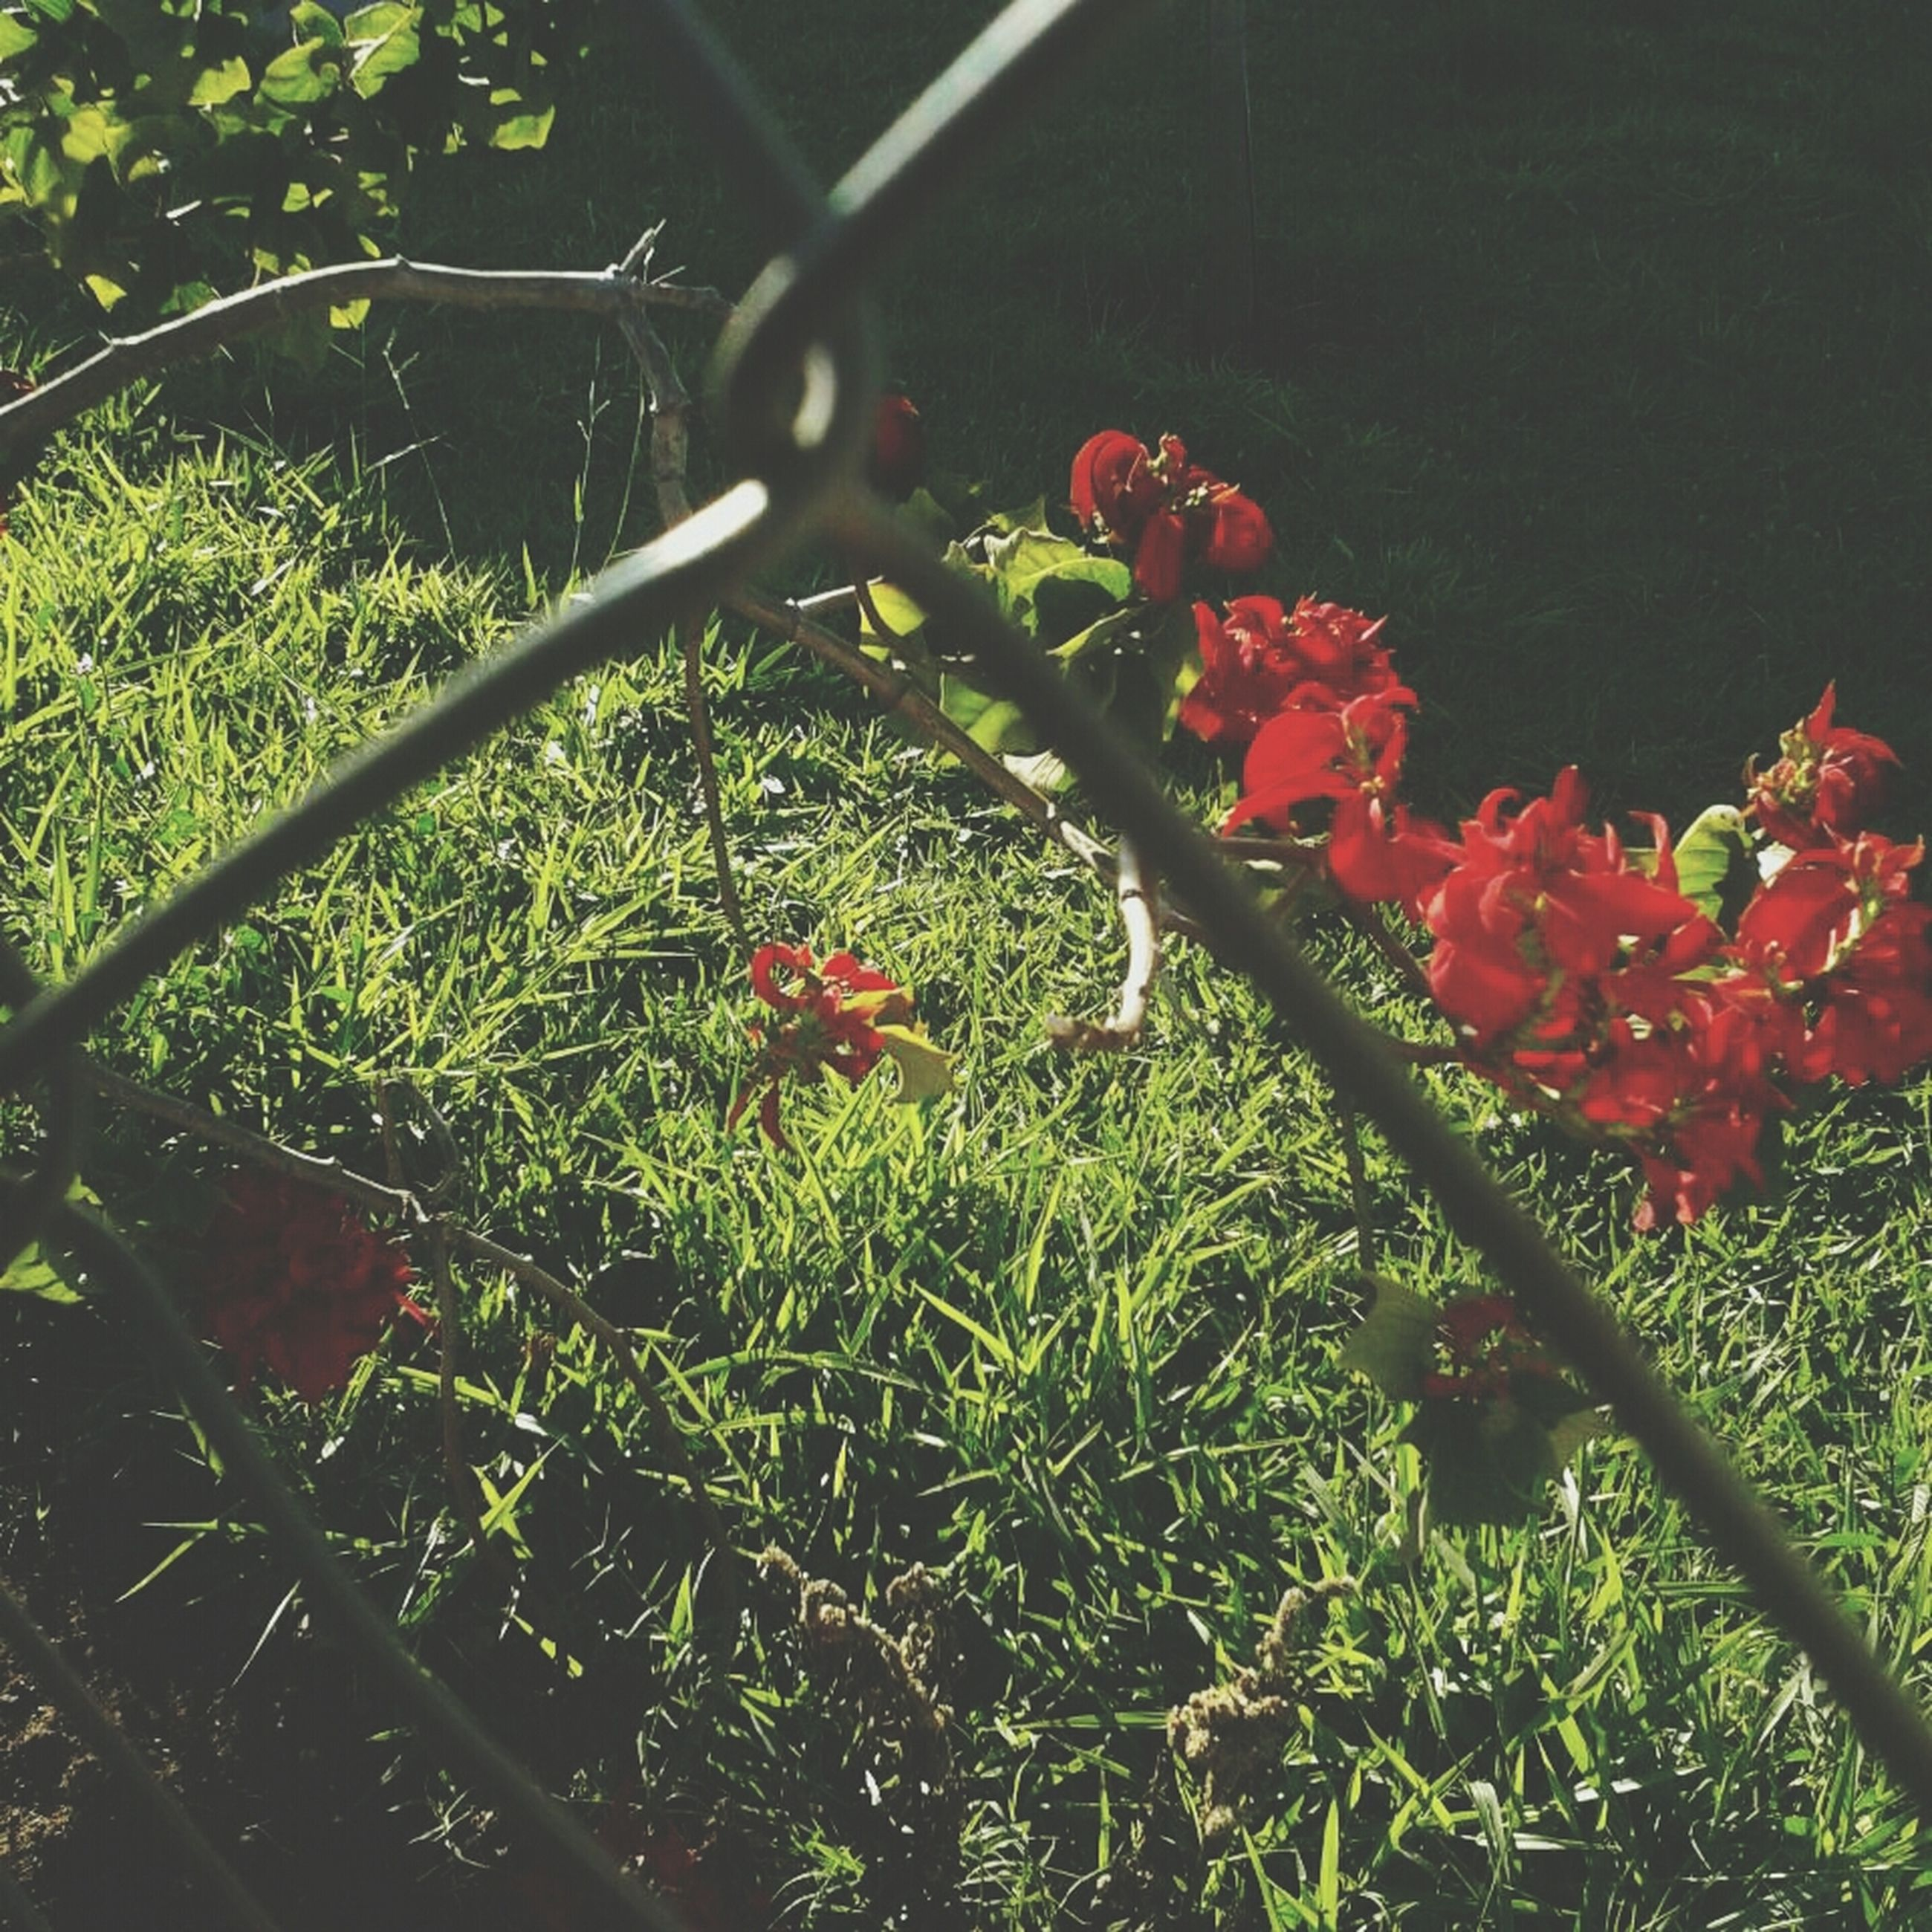 growth, plant, red, freshness, flower, nature, leaf, green color, fence, beauty in nature, day, close-up, tree, no people, fragility, outdoors, branch, metal, chainlink fence, growing